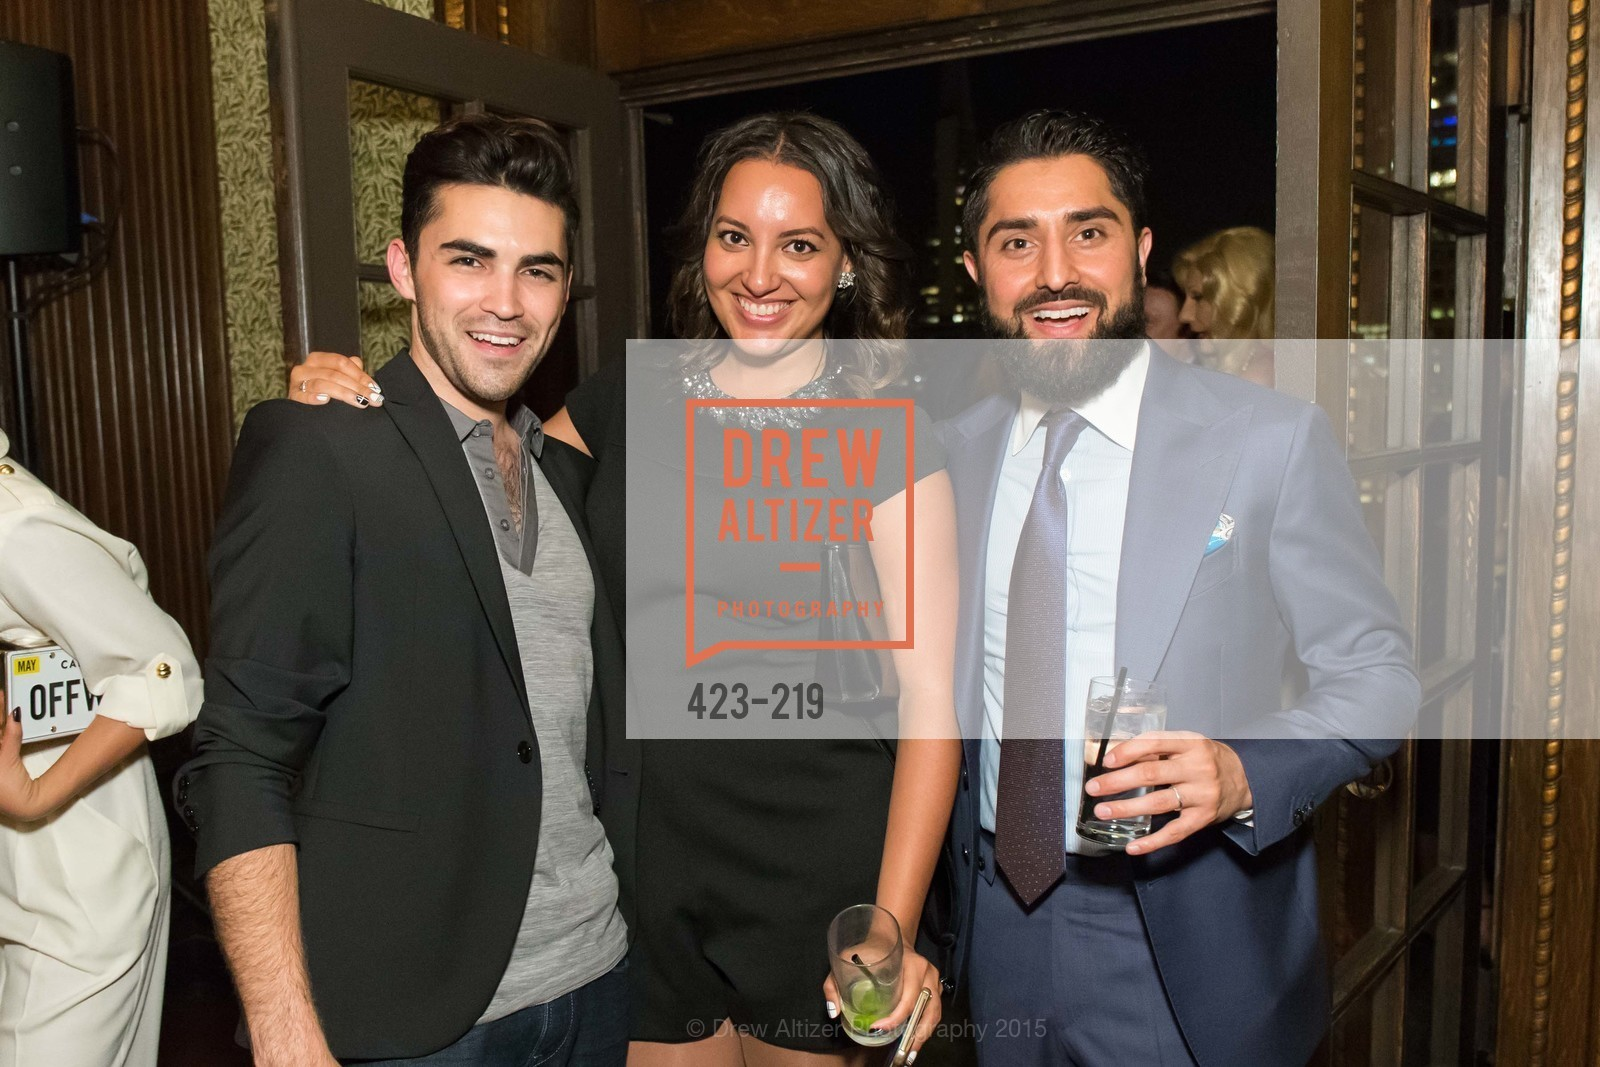 Cameron Paul, Rachel Rawls, Roh Habibi, Champagne Reception & Screening of Million Dollar Listing San Francisco, University Club. 800 Powell St, August 5th, 2015,Drew Altizer, Drew Altizer Photography, full-service agency, private events, San Francisco photographer, photographer california